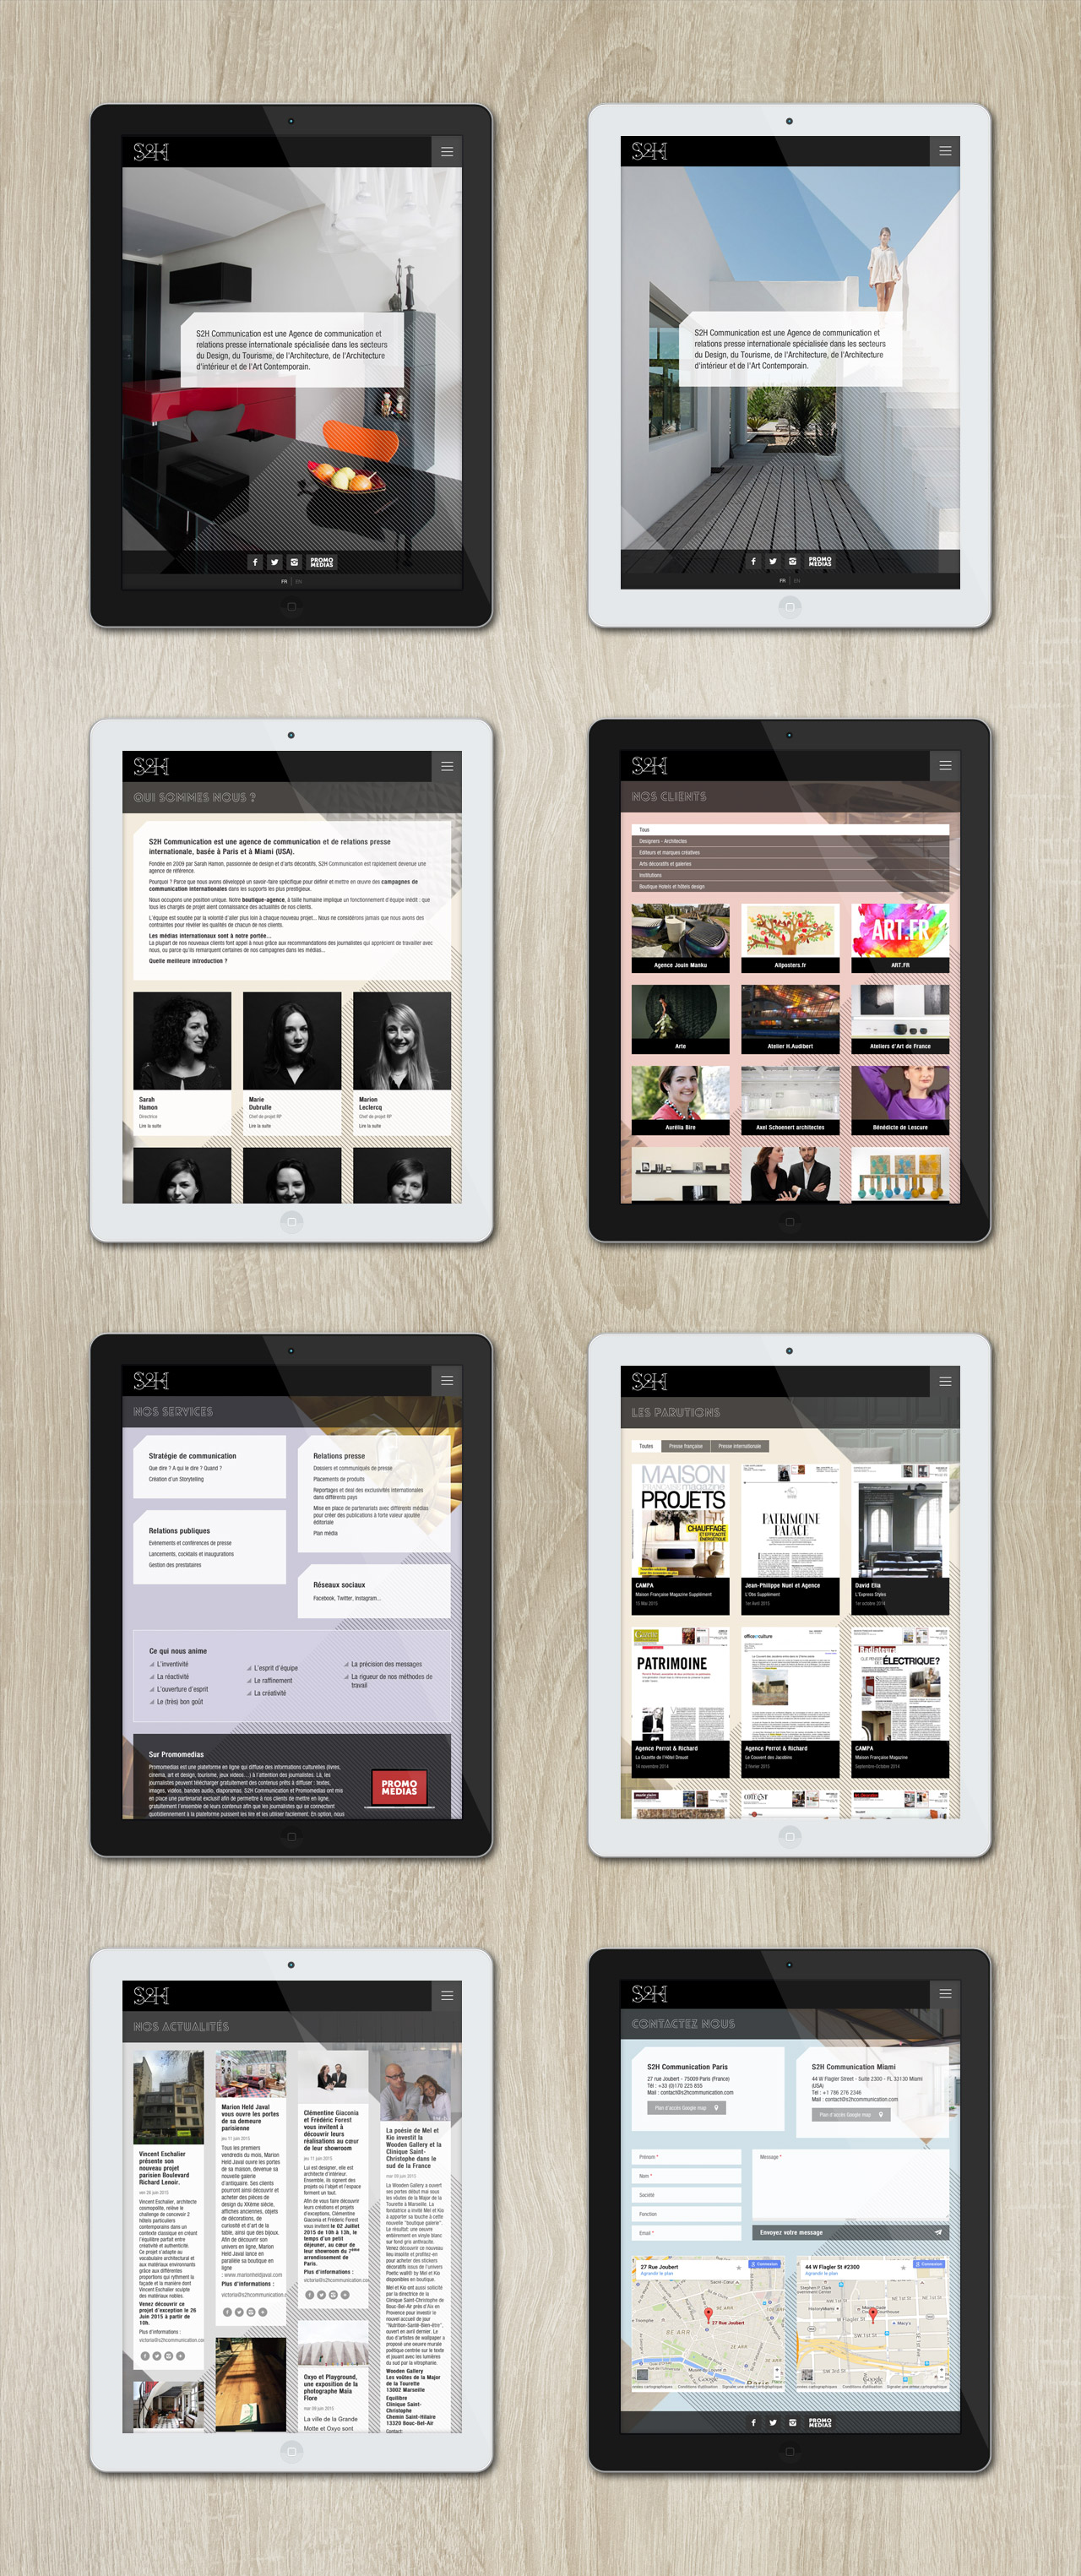 s2h-creation-site-responsive-design-tablette-communication-hemerastudio-alexis-cretin-graphiste